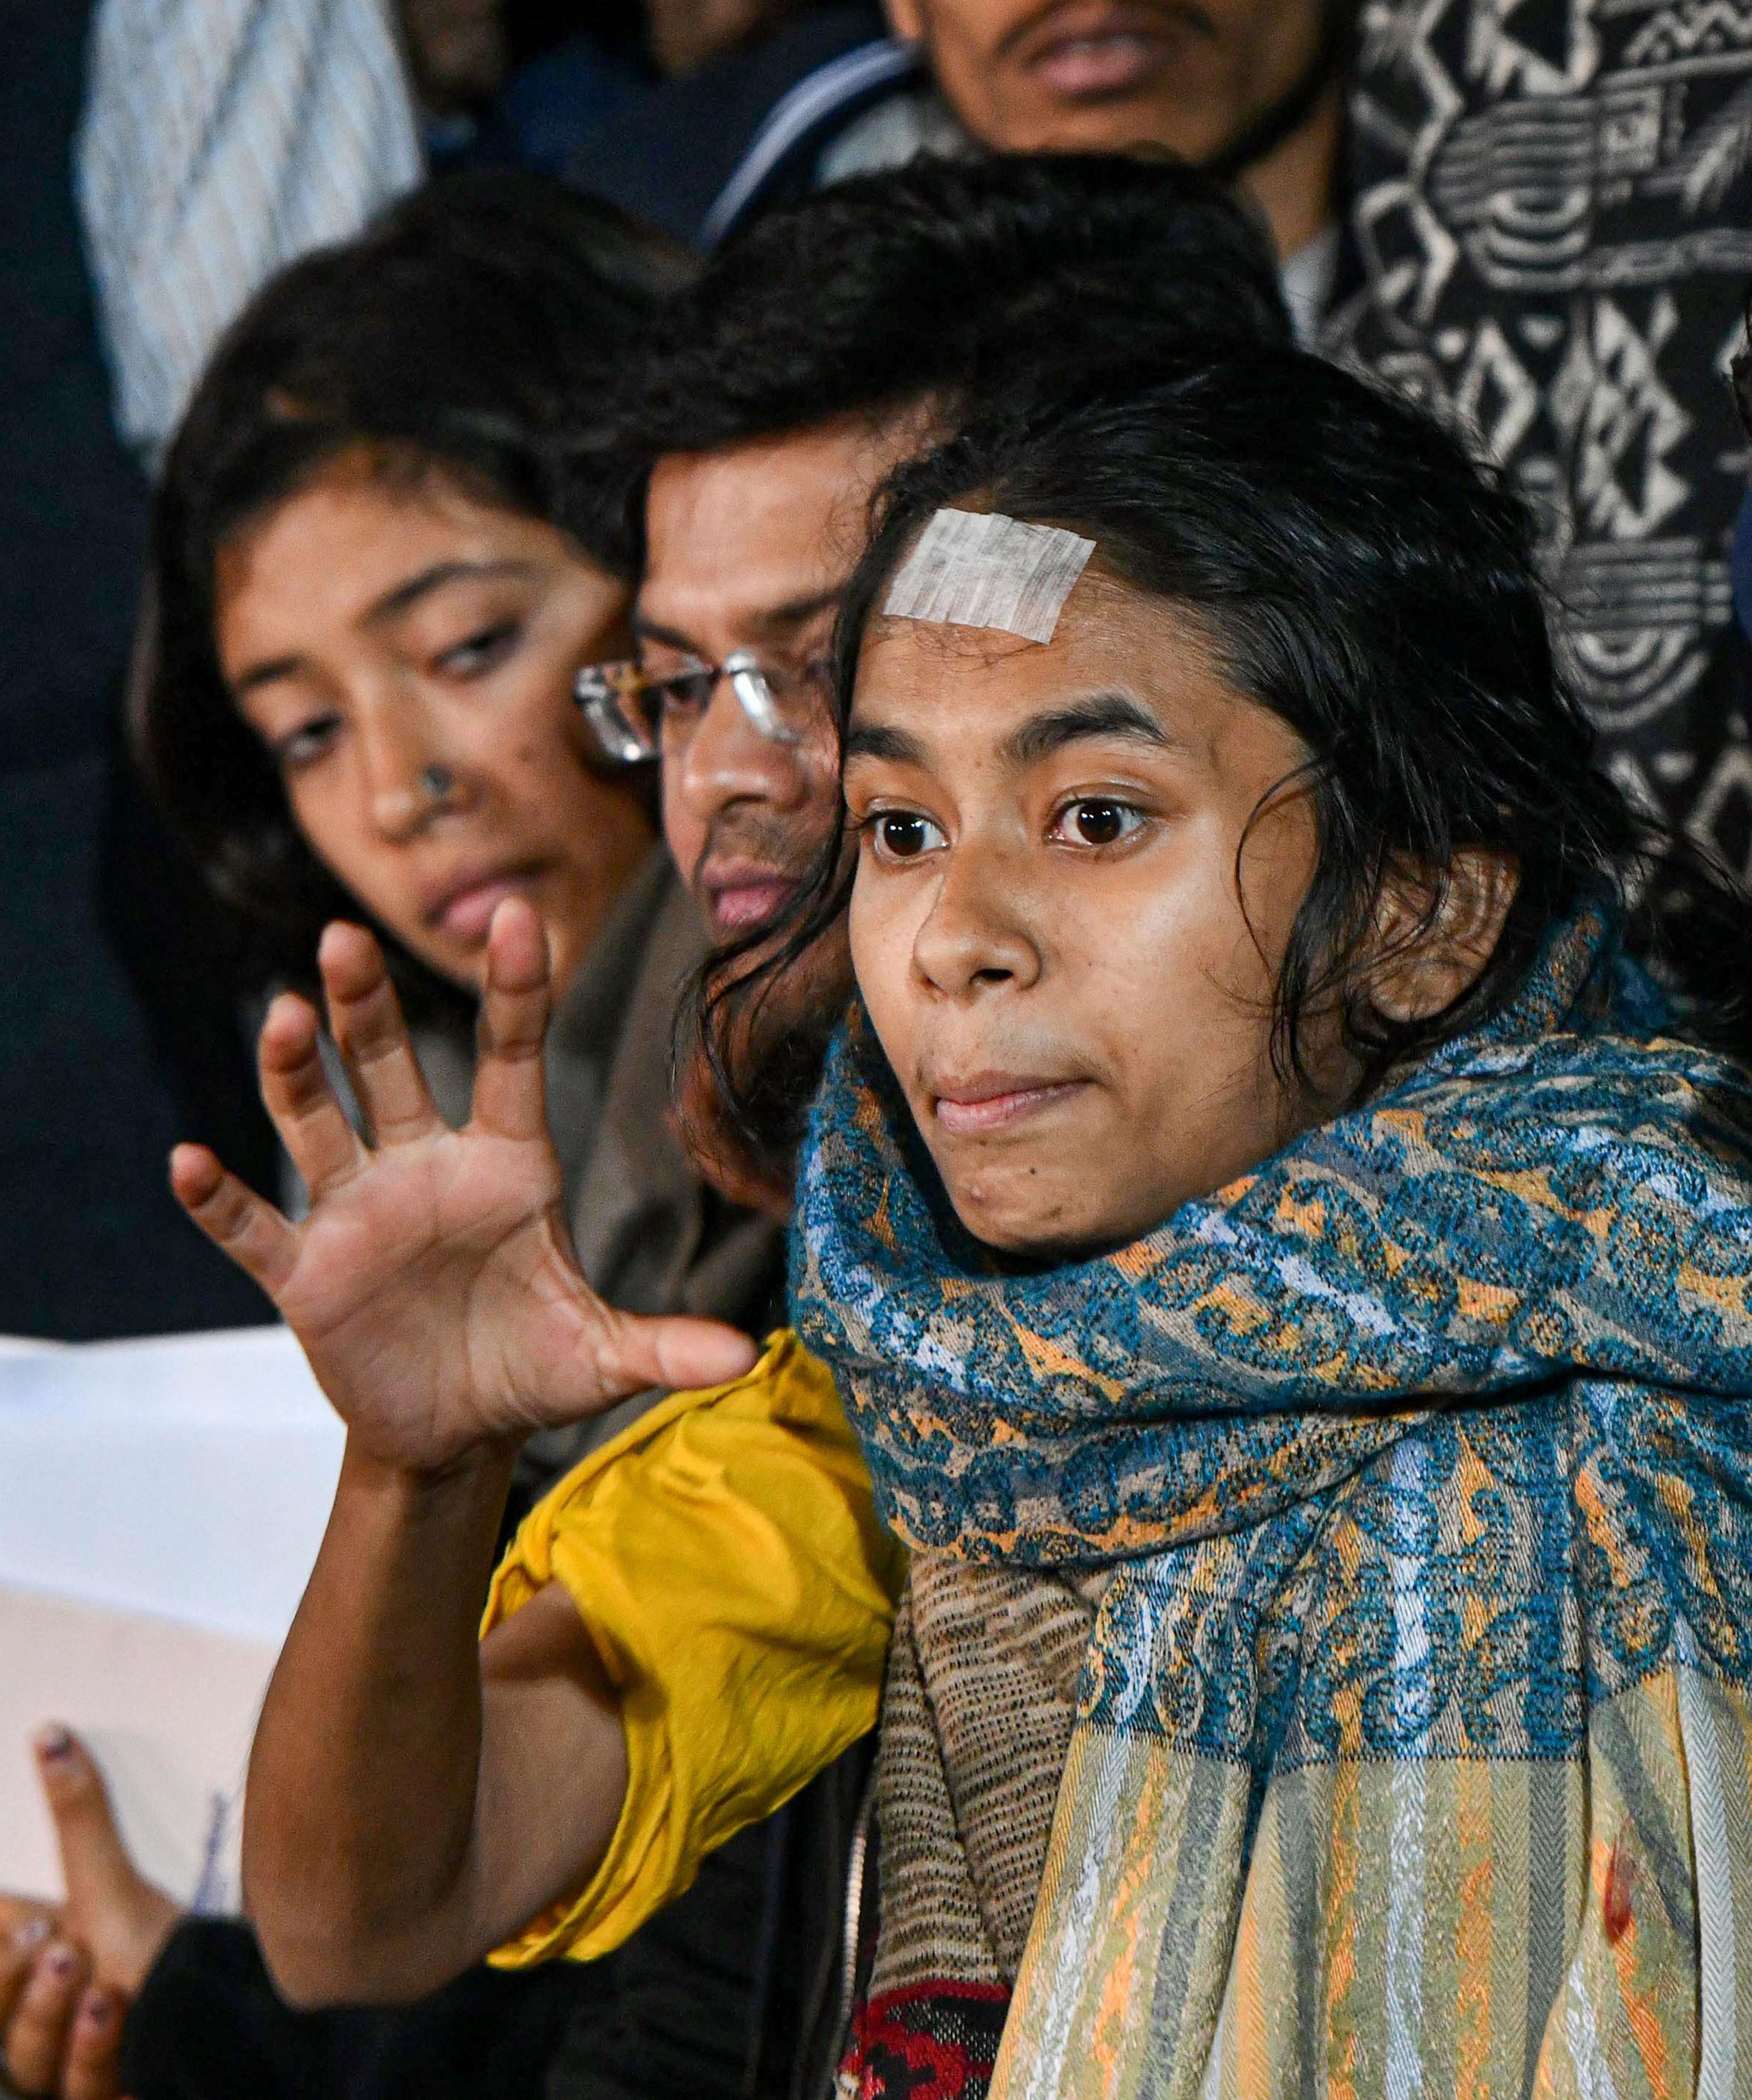 JNUSU president Aishe Ghosh (in picture) is among the seven out of the total nine suspects, who are from Left-leaning student organisations while two suspects are from the RSS-affiliated ABVP